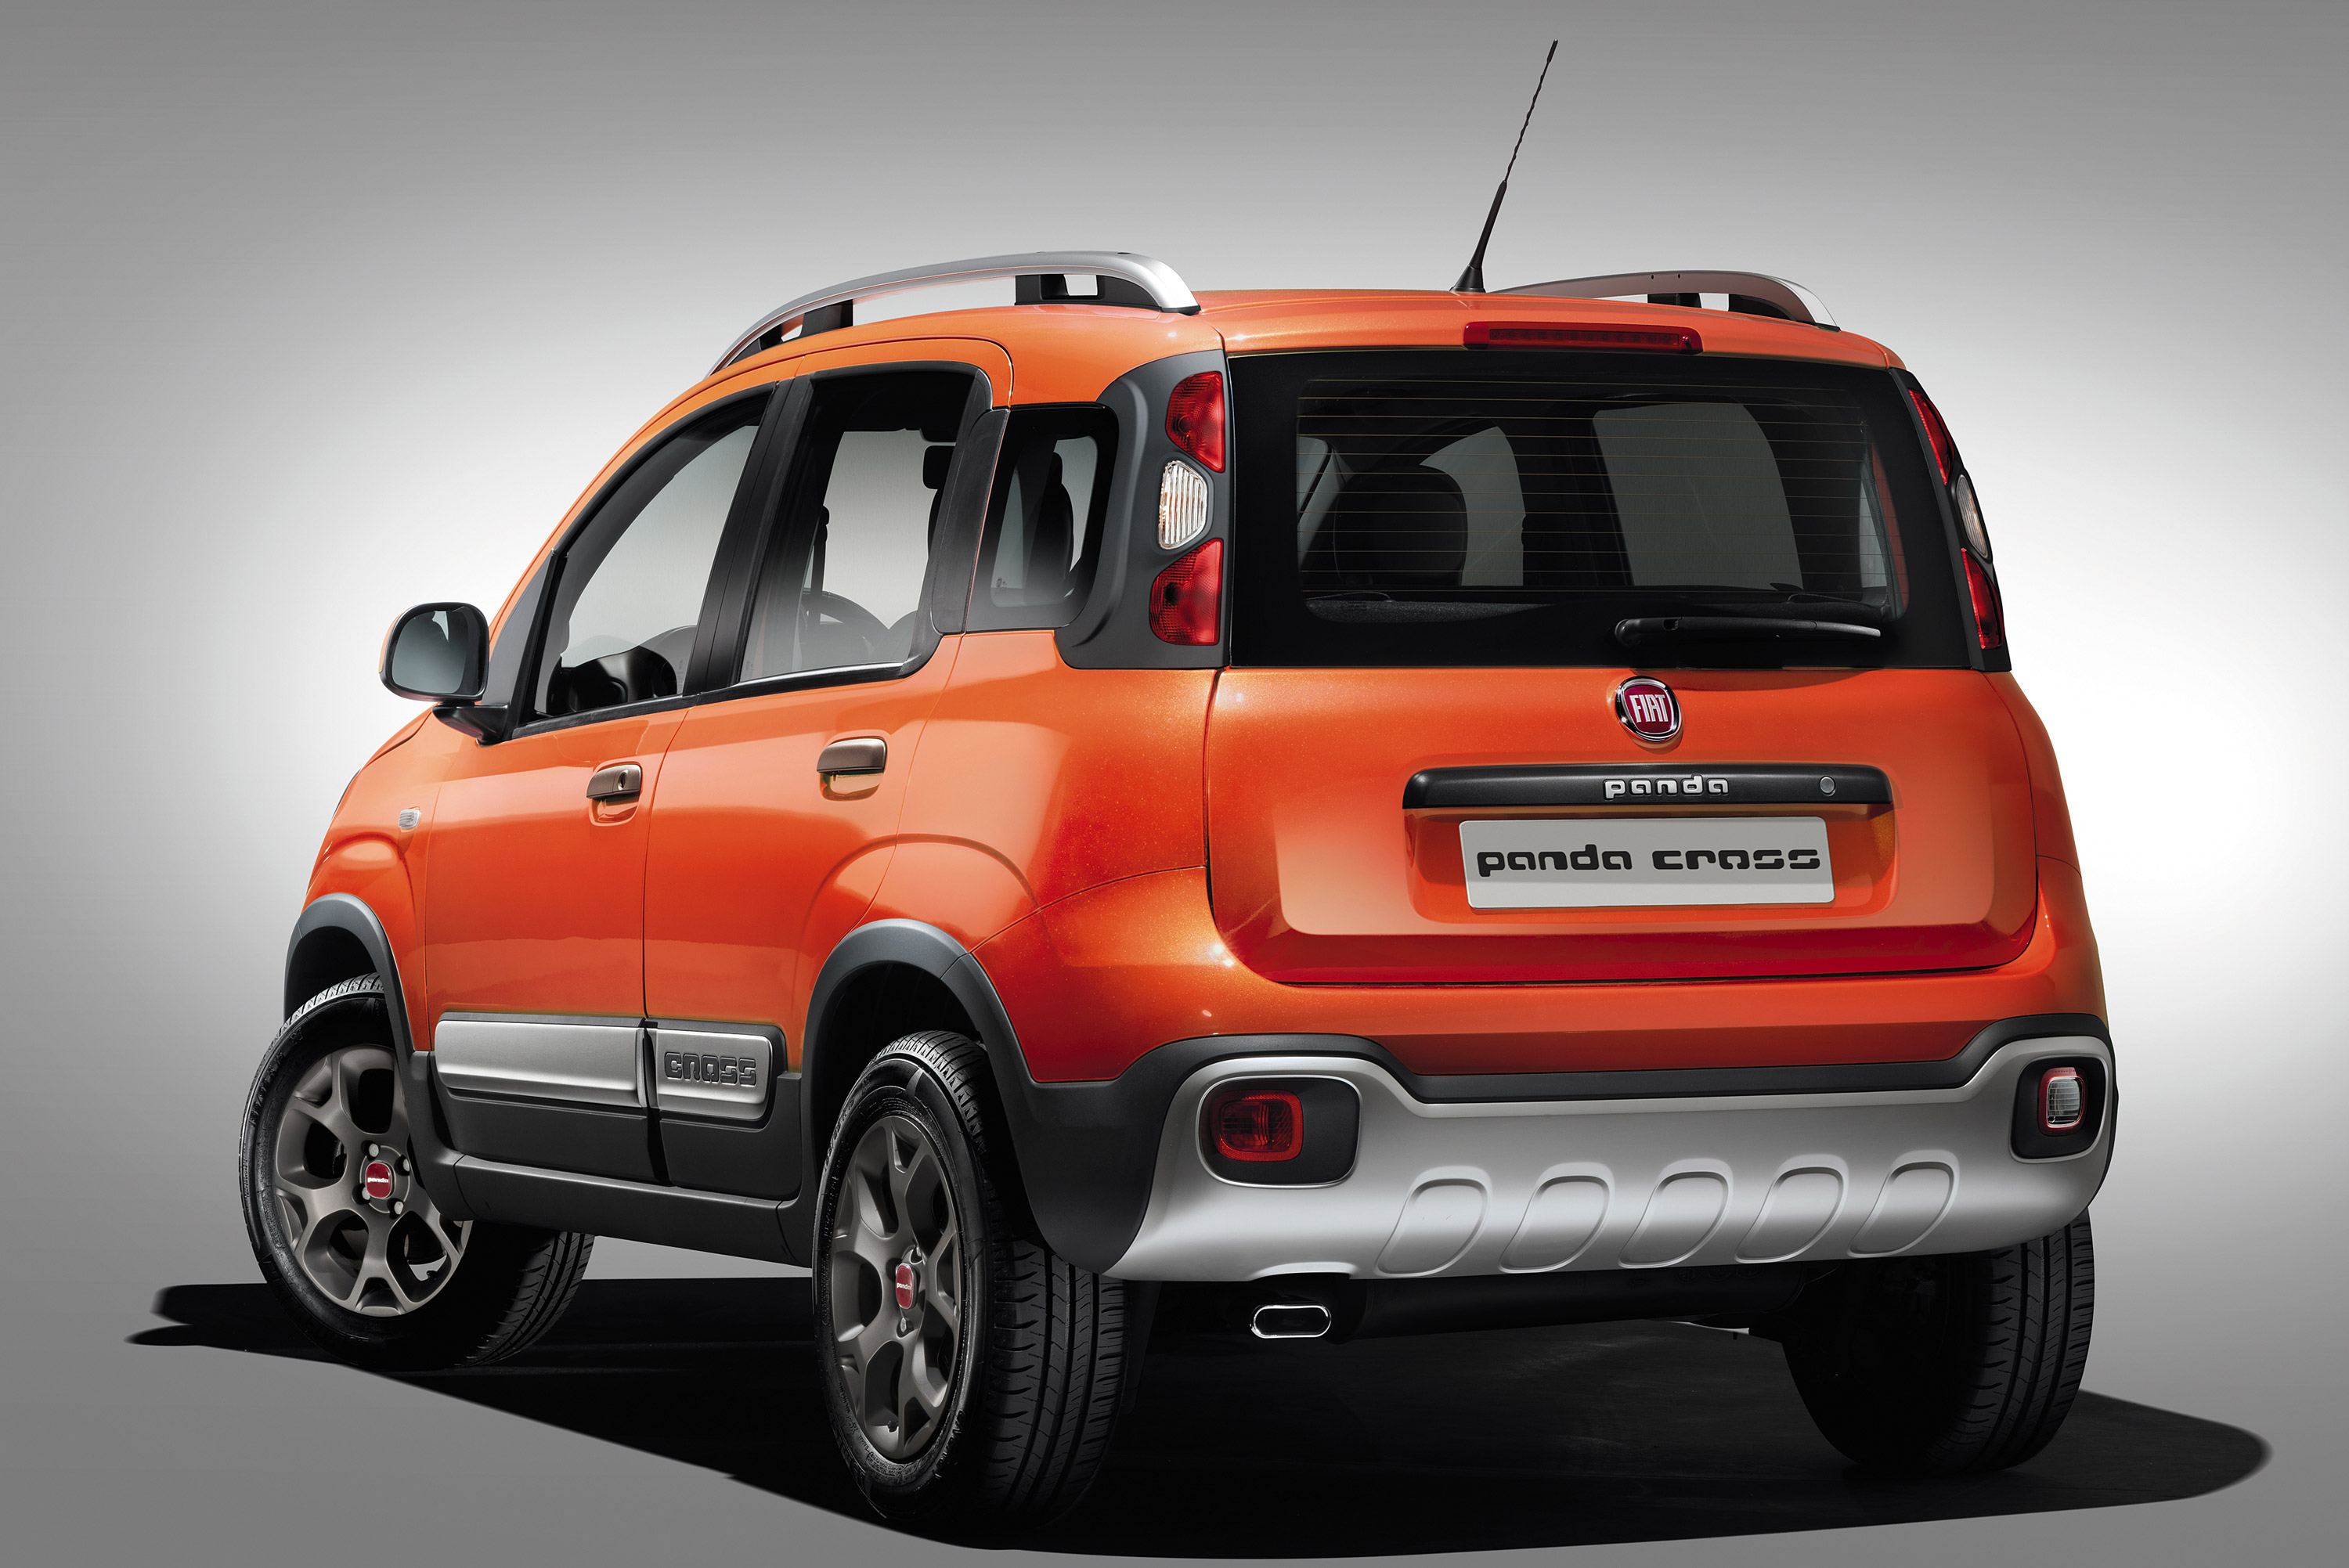 2014 fiat panda cross adds more rugged looks. Black Bedroom Furniture Sets. Home Design Ideas